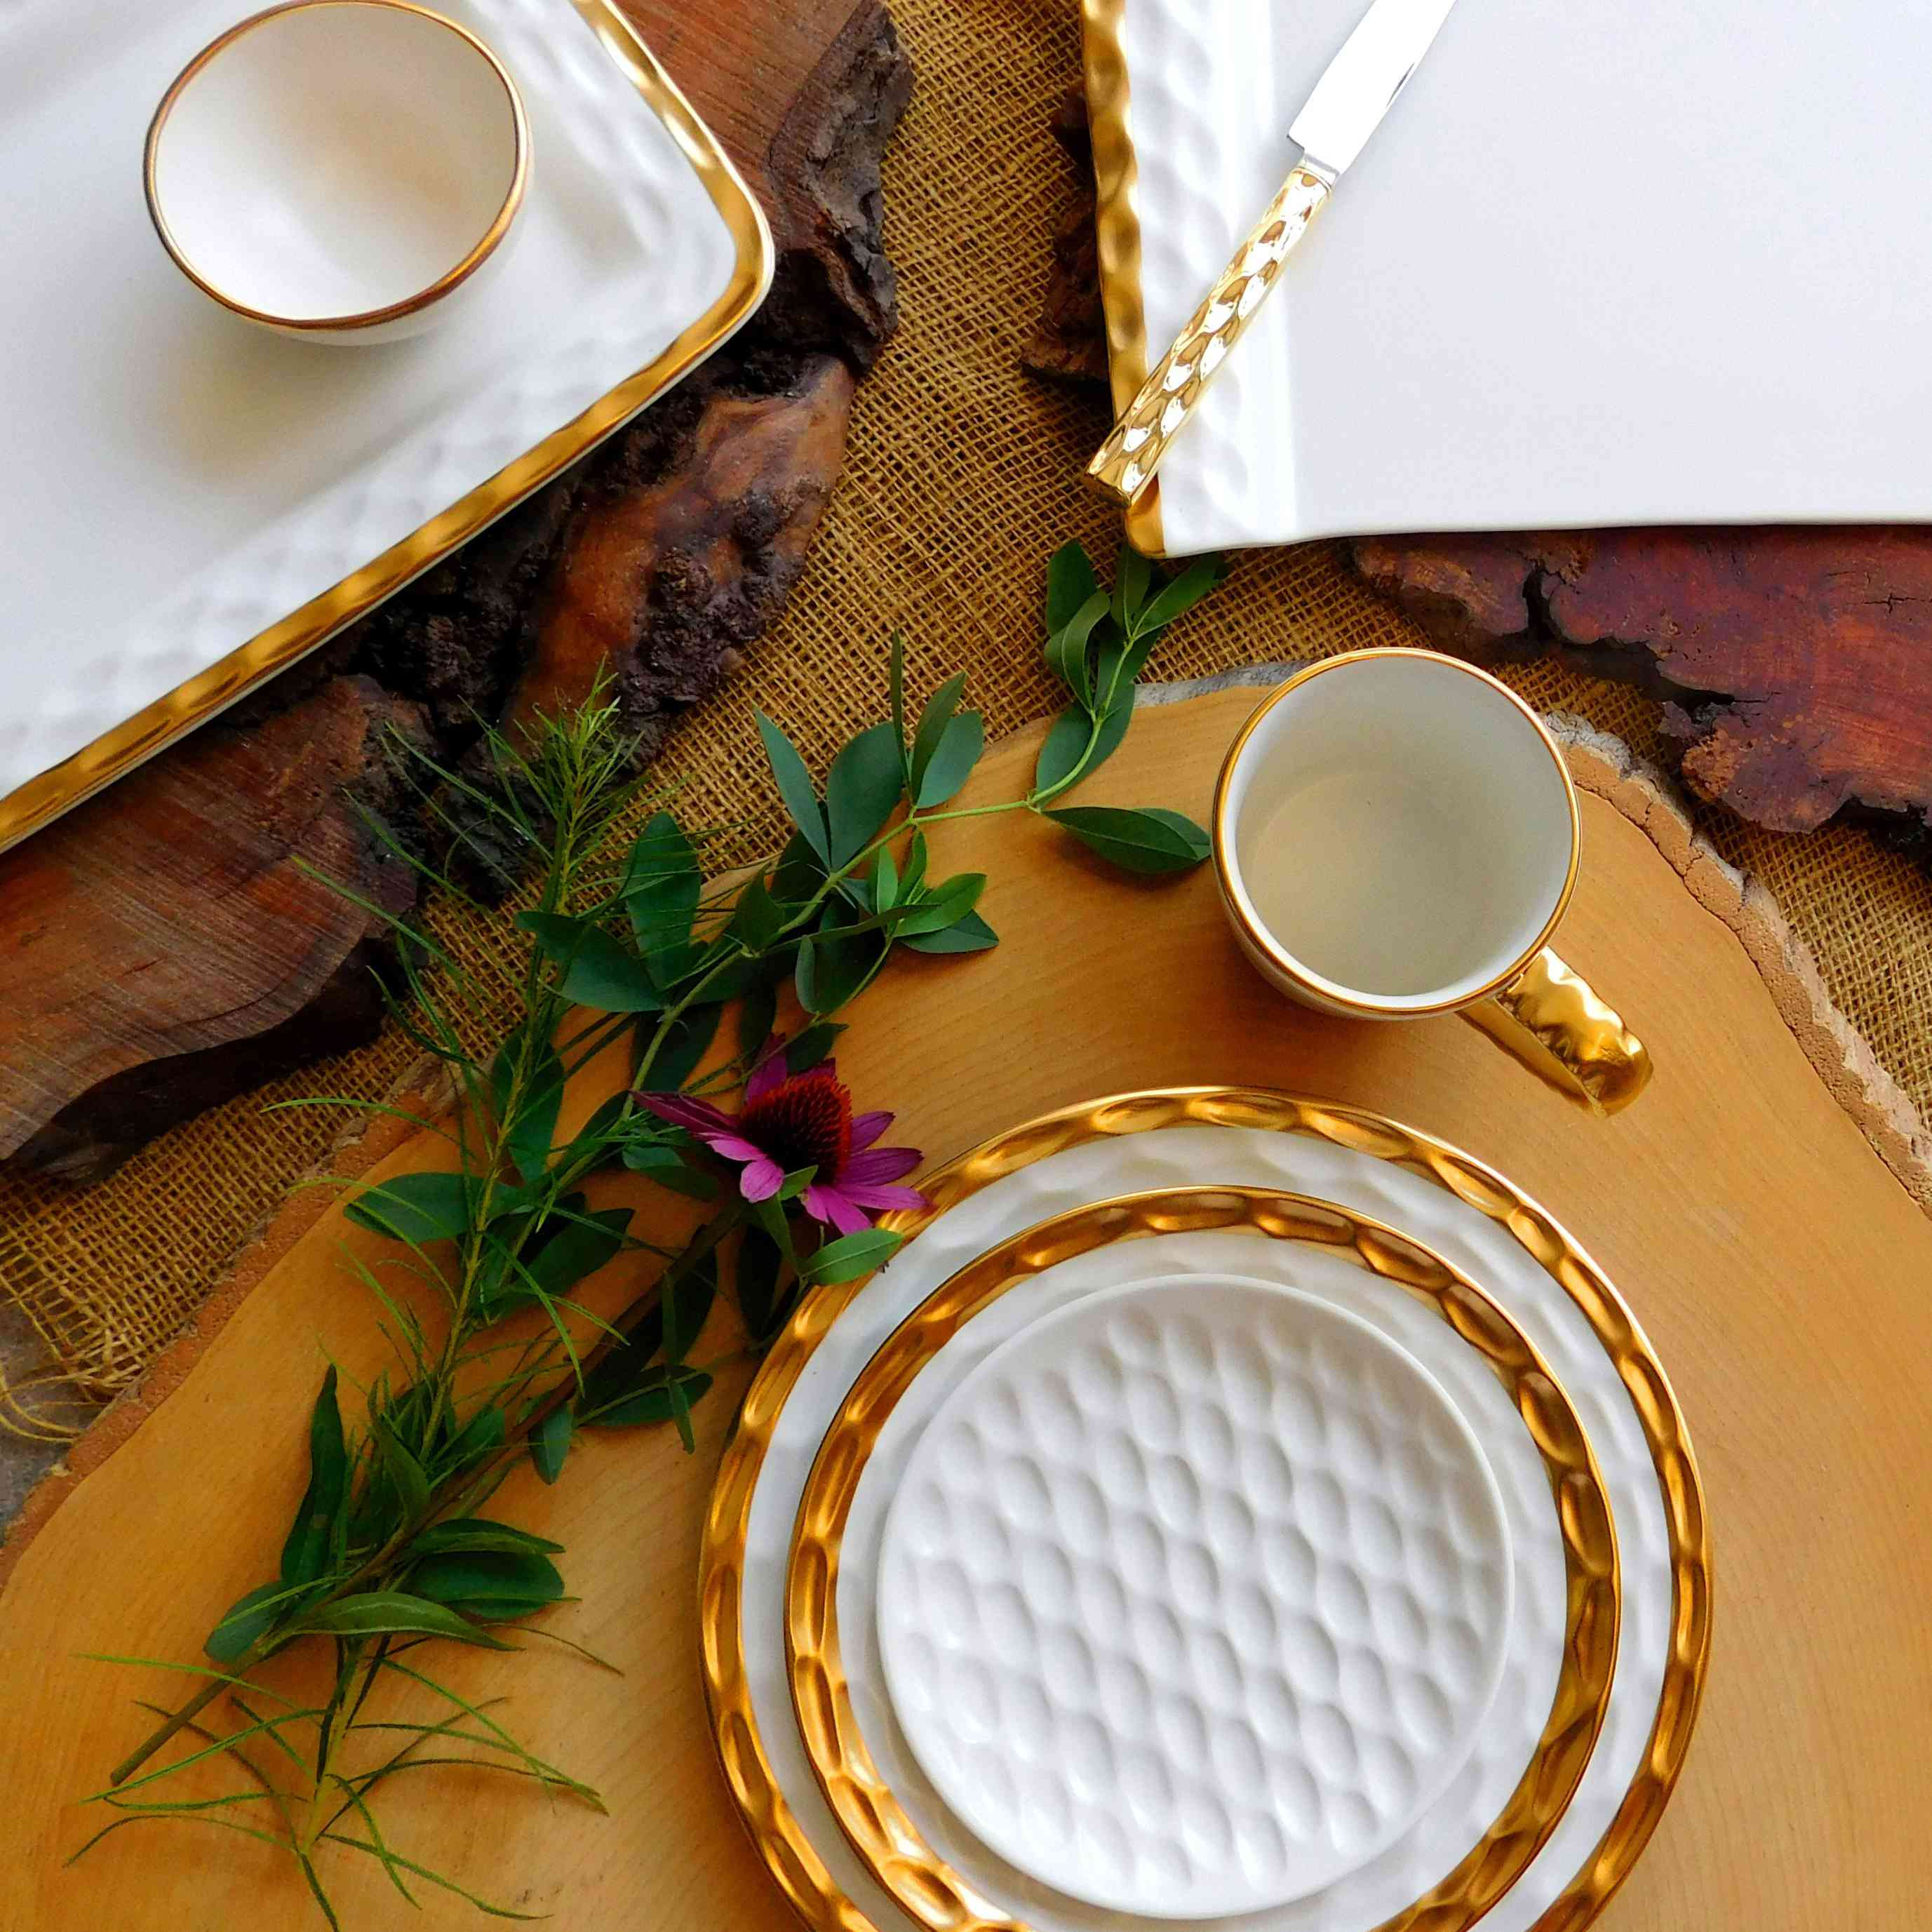 Fall tablescape with gold serveware